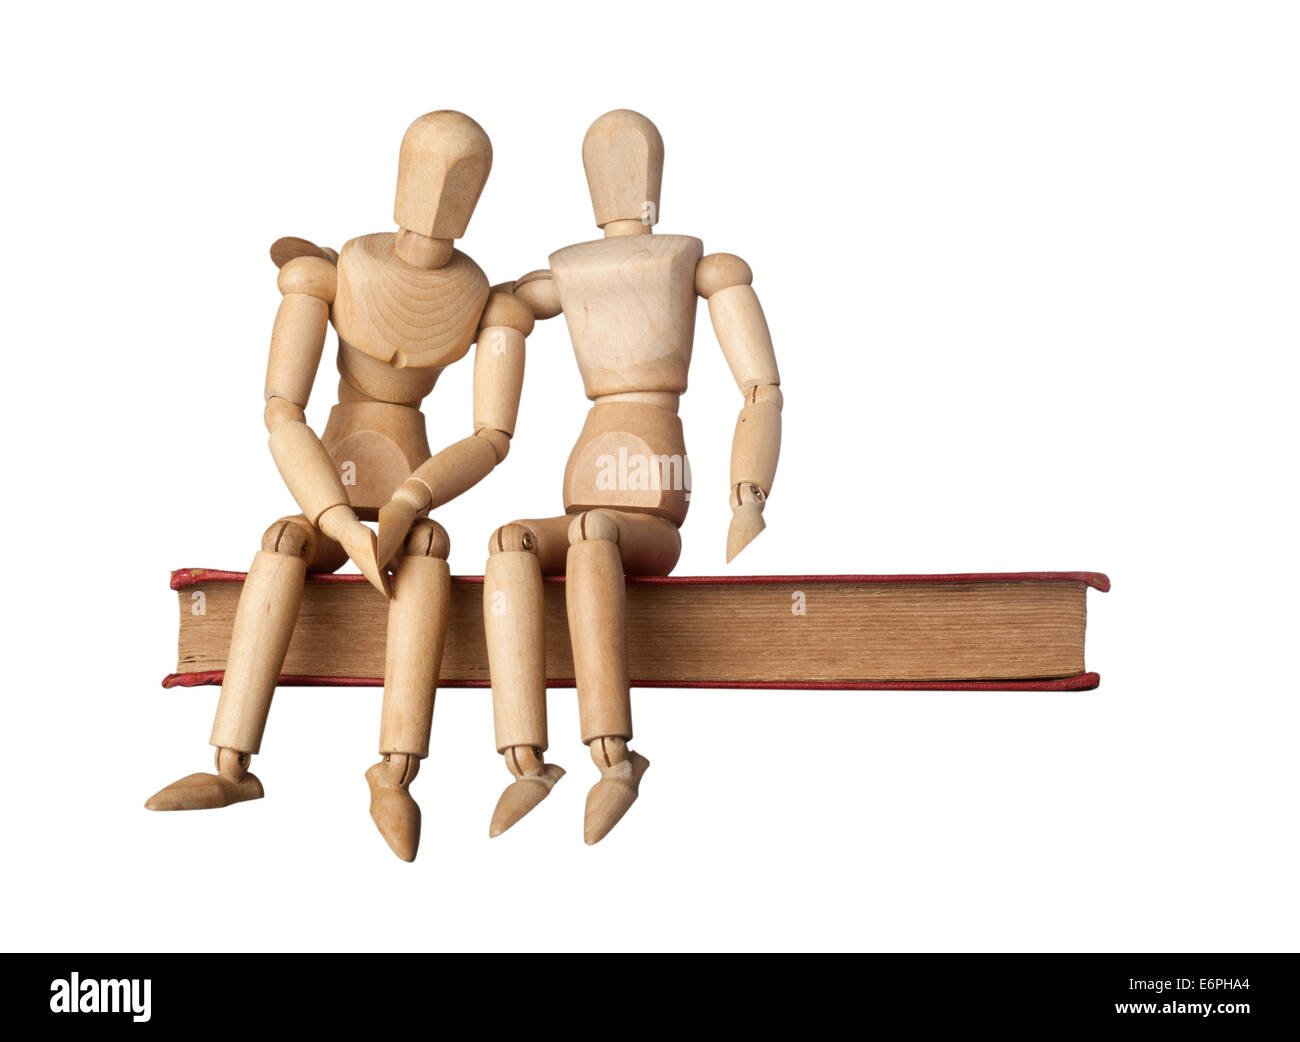 Consolation of a friend depicted by two figurines on a book isolated on white background - Stock Image